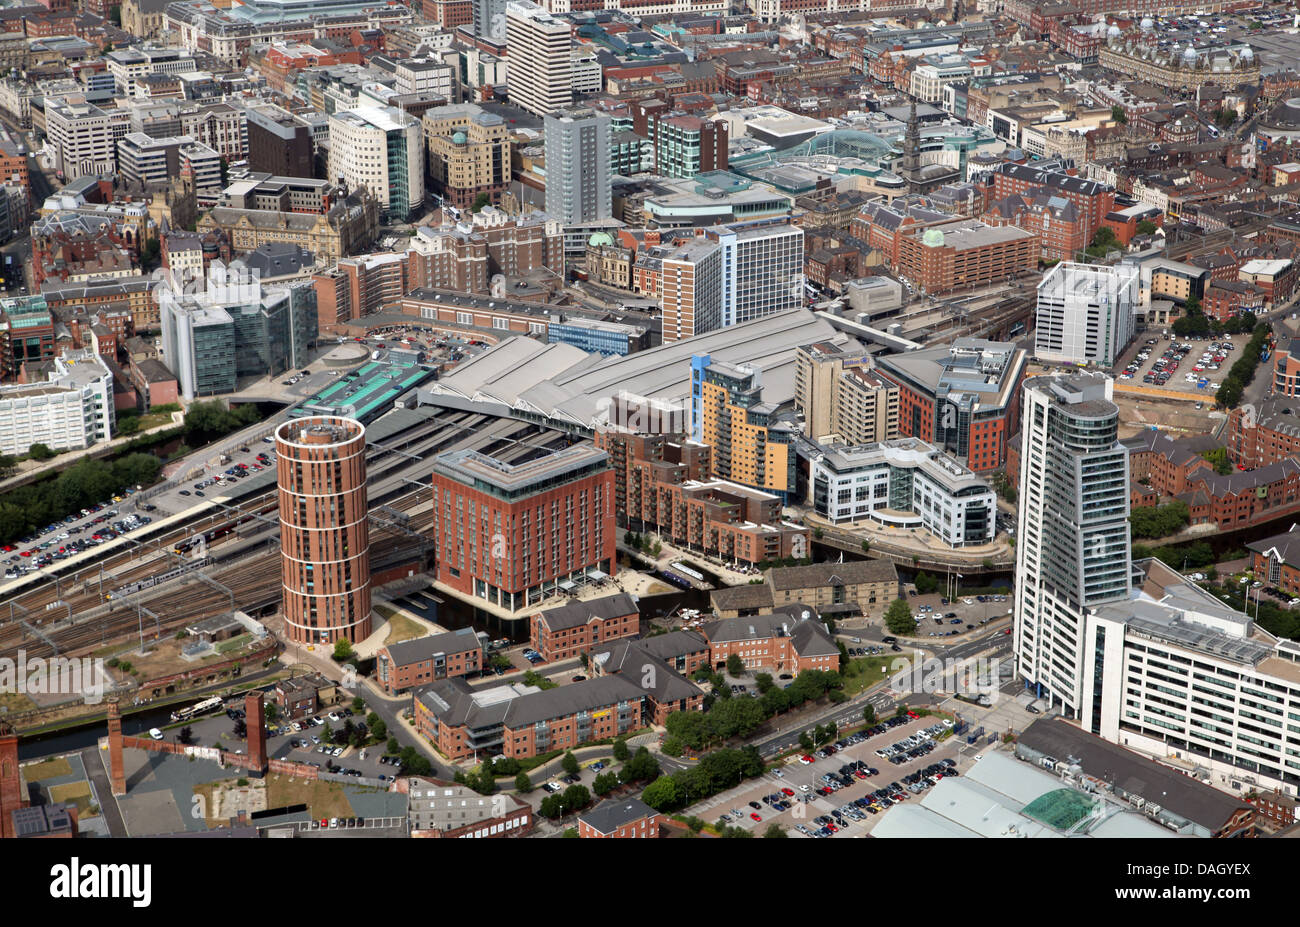 aerial view of Leeds City centre from the south west looking over the River Aire toward Leeds City Station - Stock Image